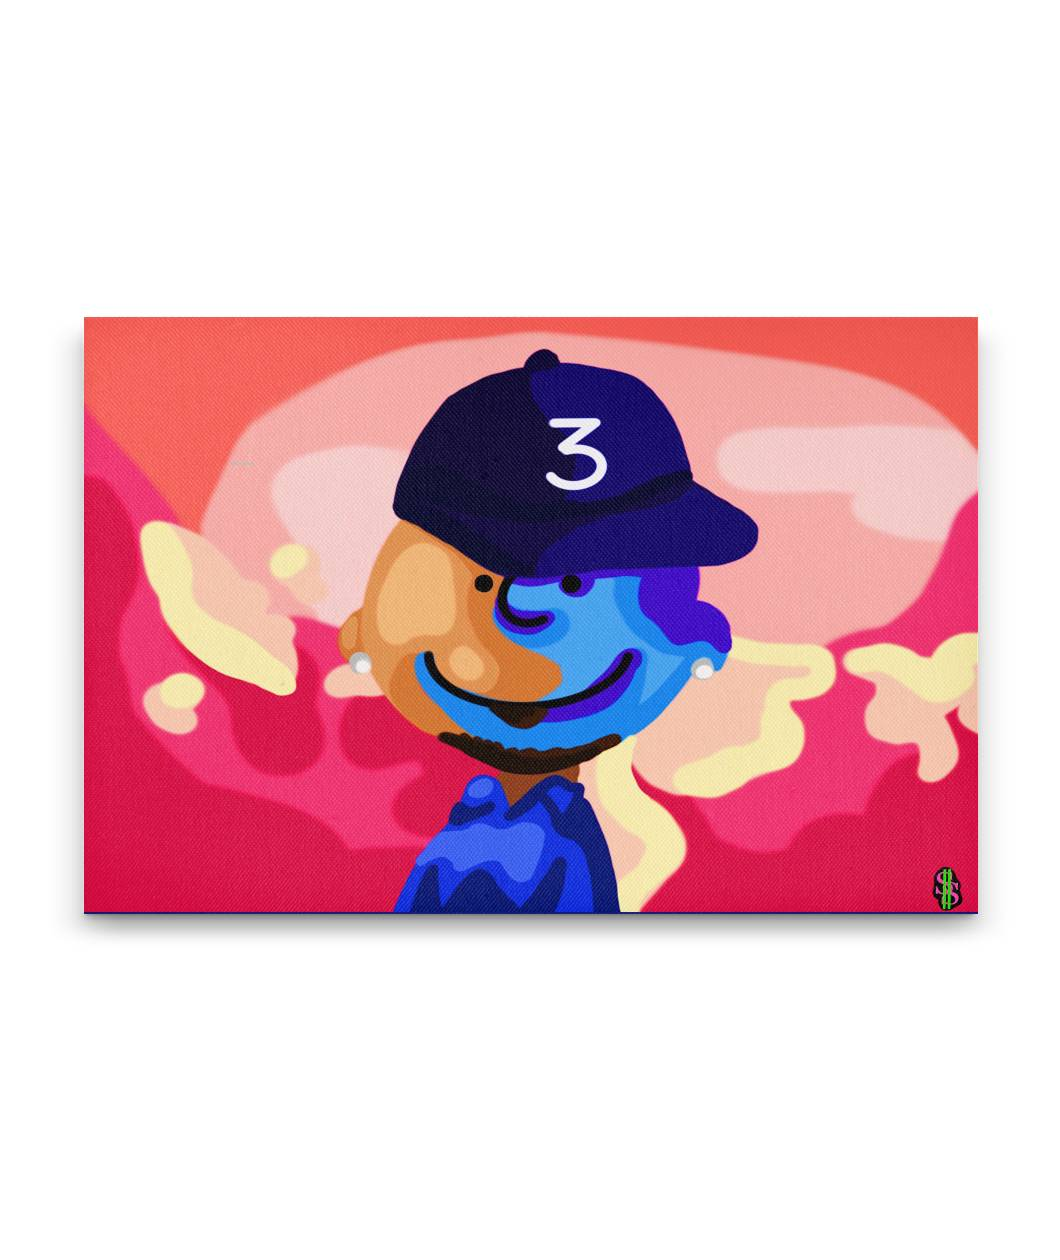 CHANCE THE RAPPER X CHARLIE BROWN